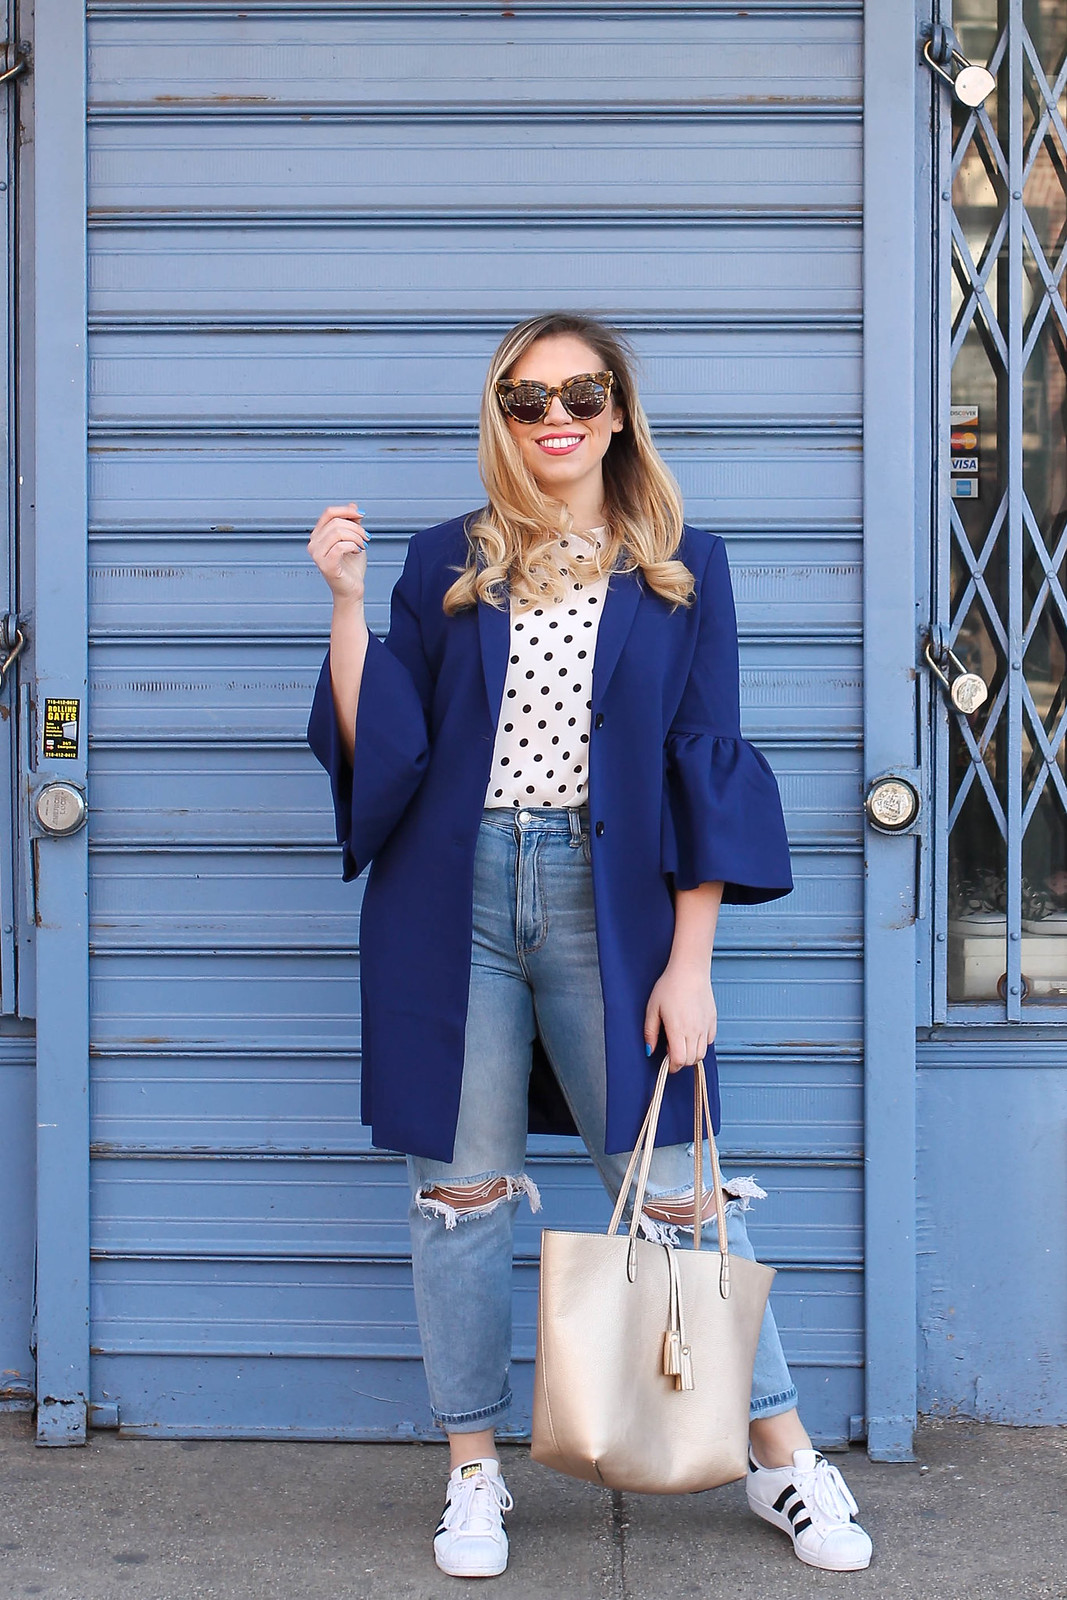 Spring Outfit Blue Bell Sleeve Jacket Polka Dot Tank Top American Eagle Mom Jeans Adidas Superstar Sneakers Living After Midnite Jackie Giardina Style Fashion Blogger